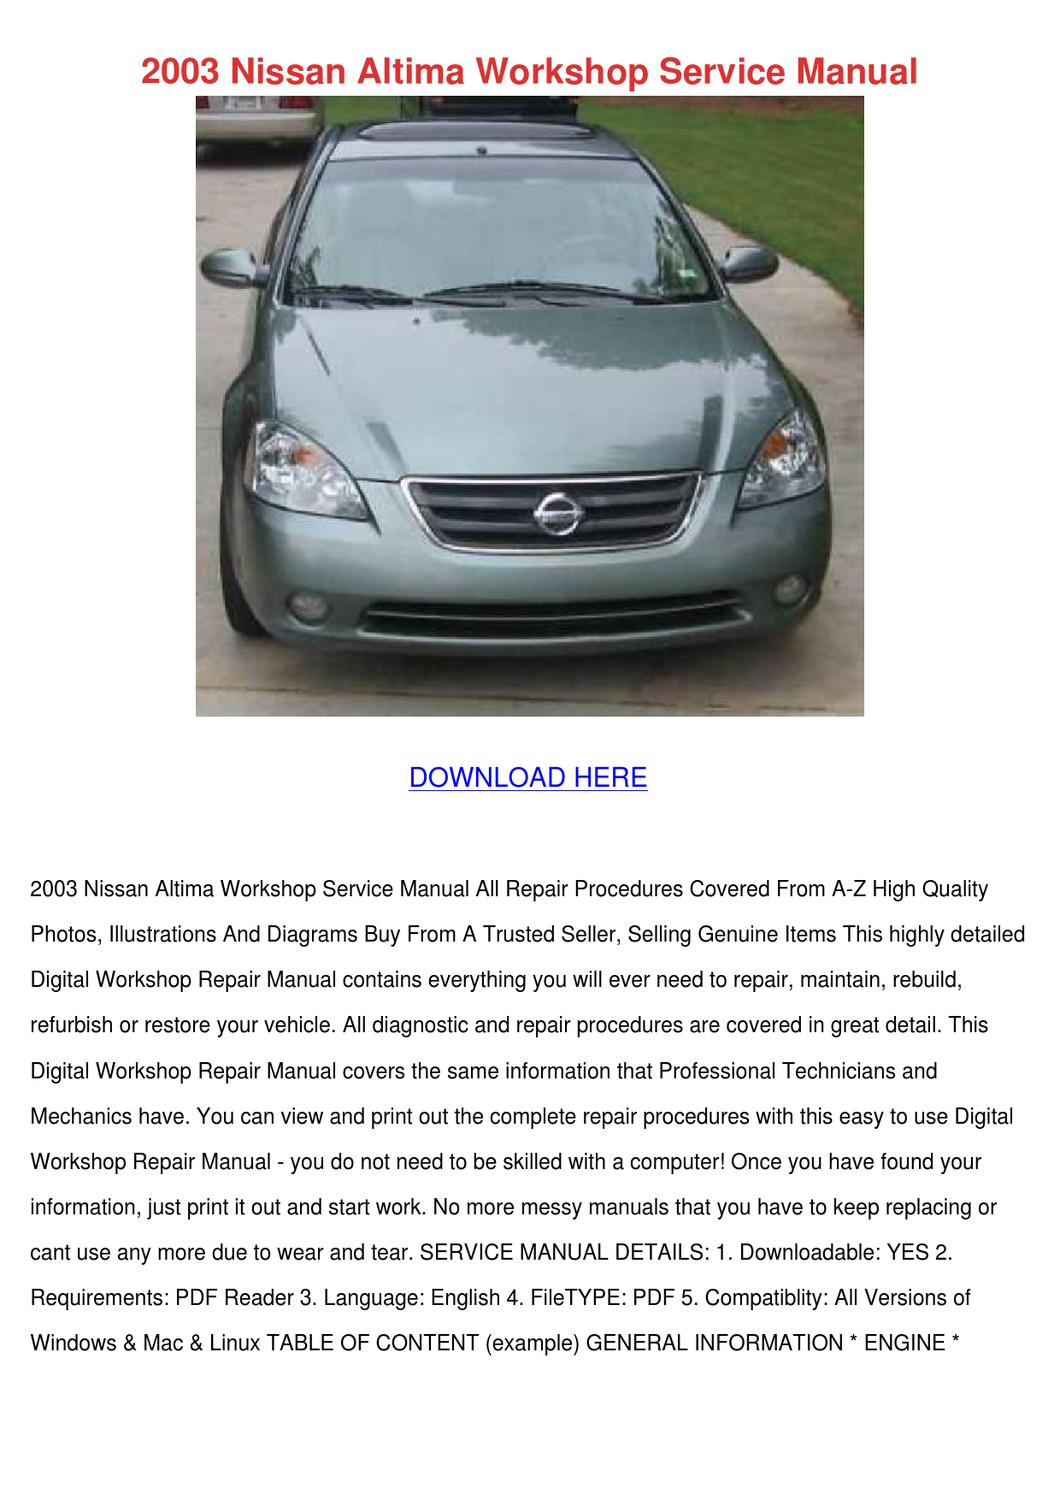 2003 Nissan Altima Workshop Service Manual By Dionna Canterbury Issuu 1996 Wiring Diagram Related Keywords Suggestions